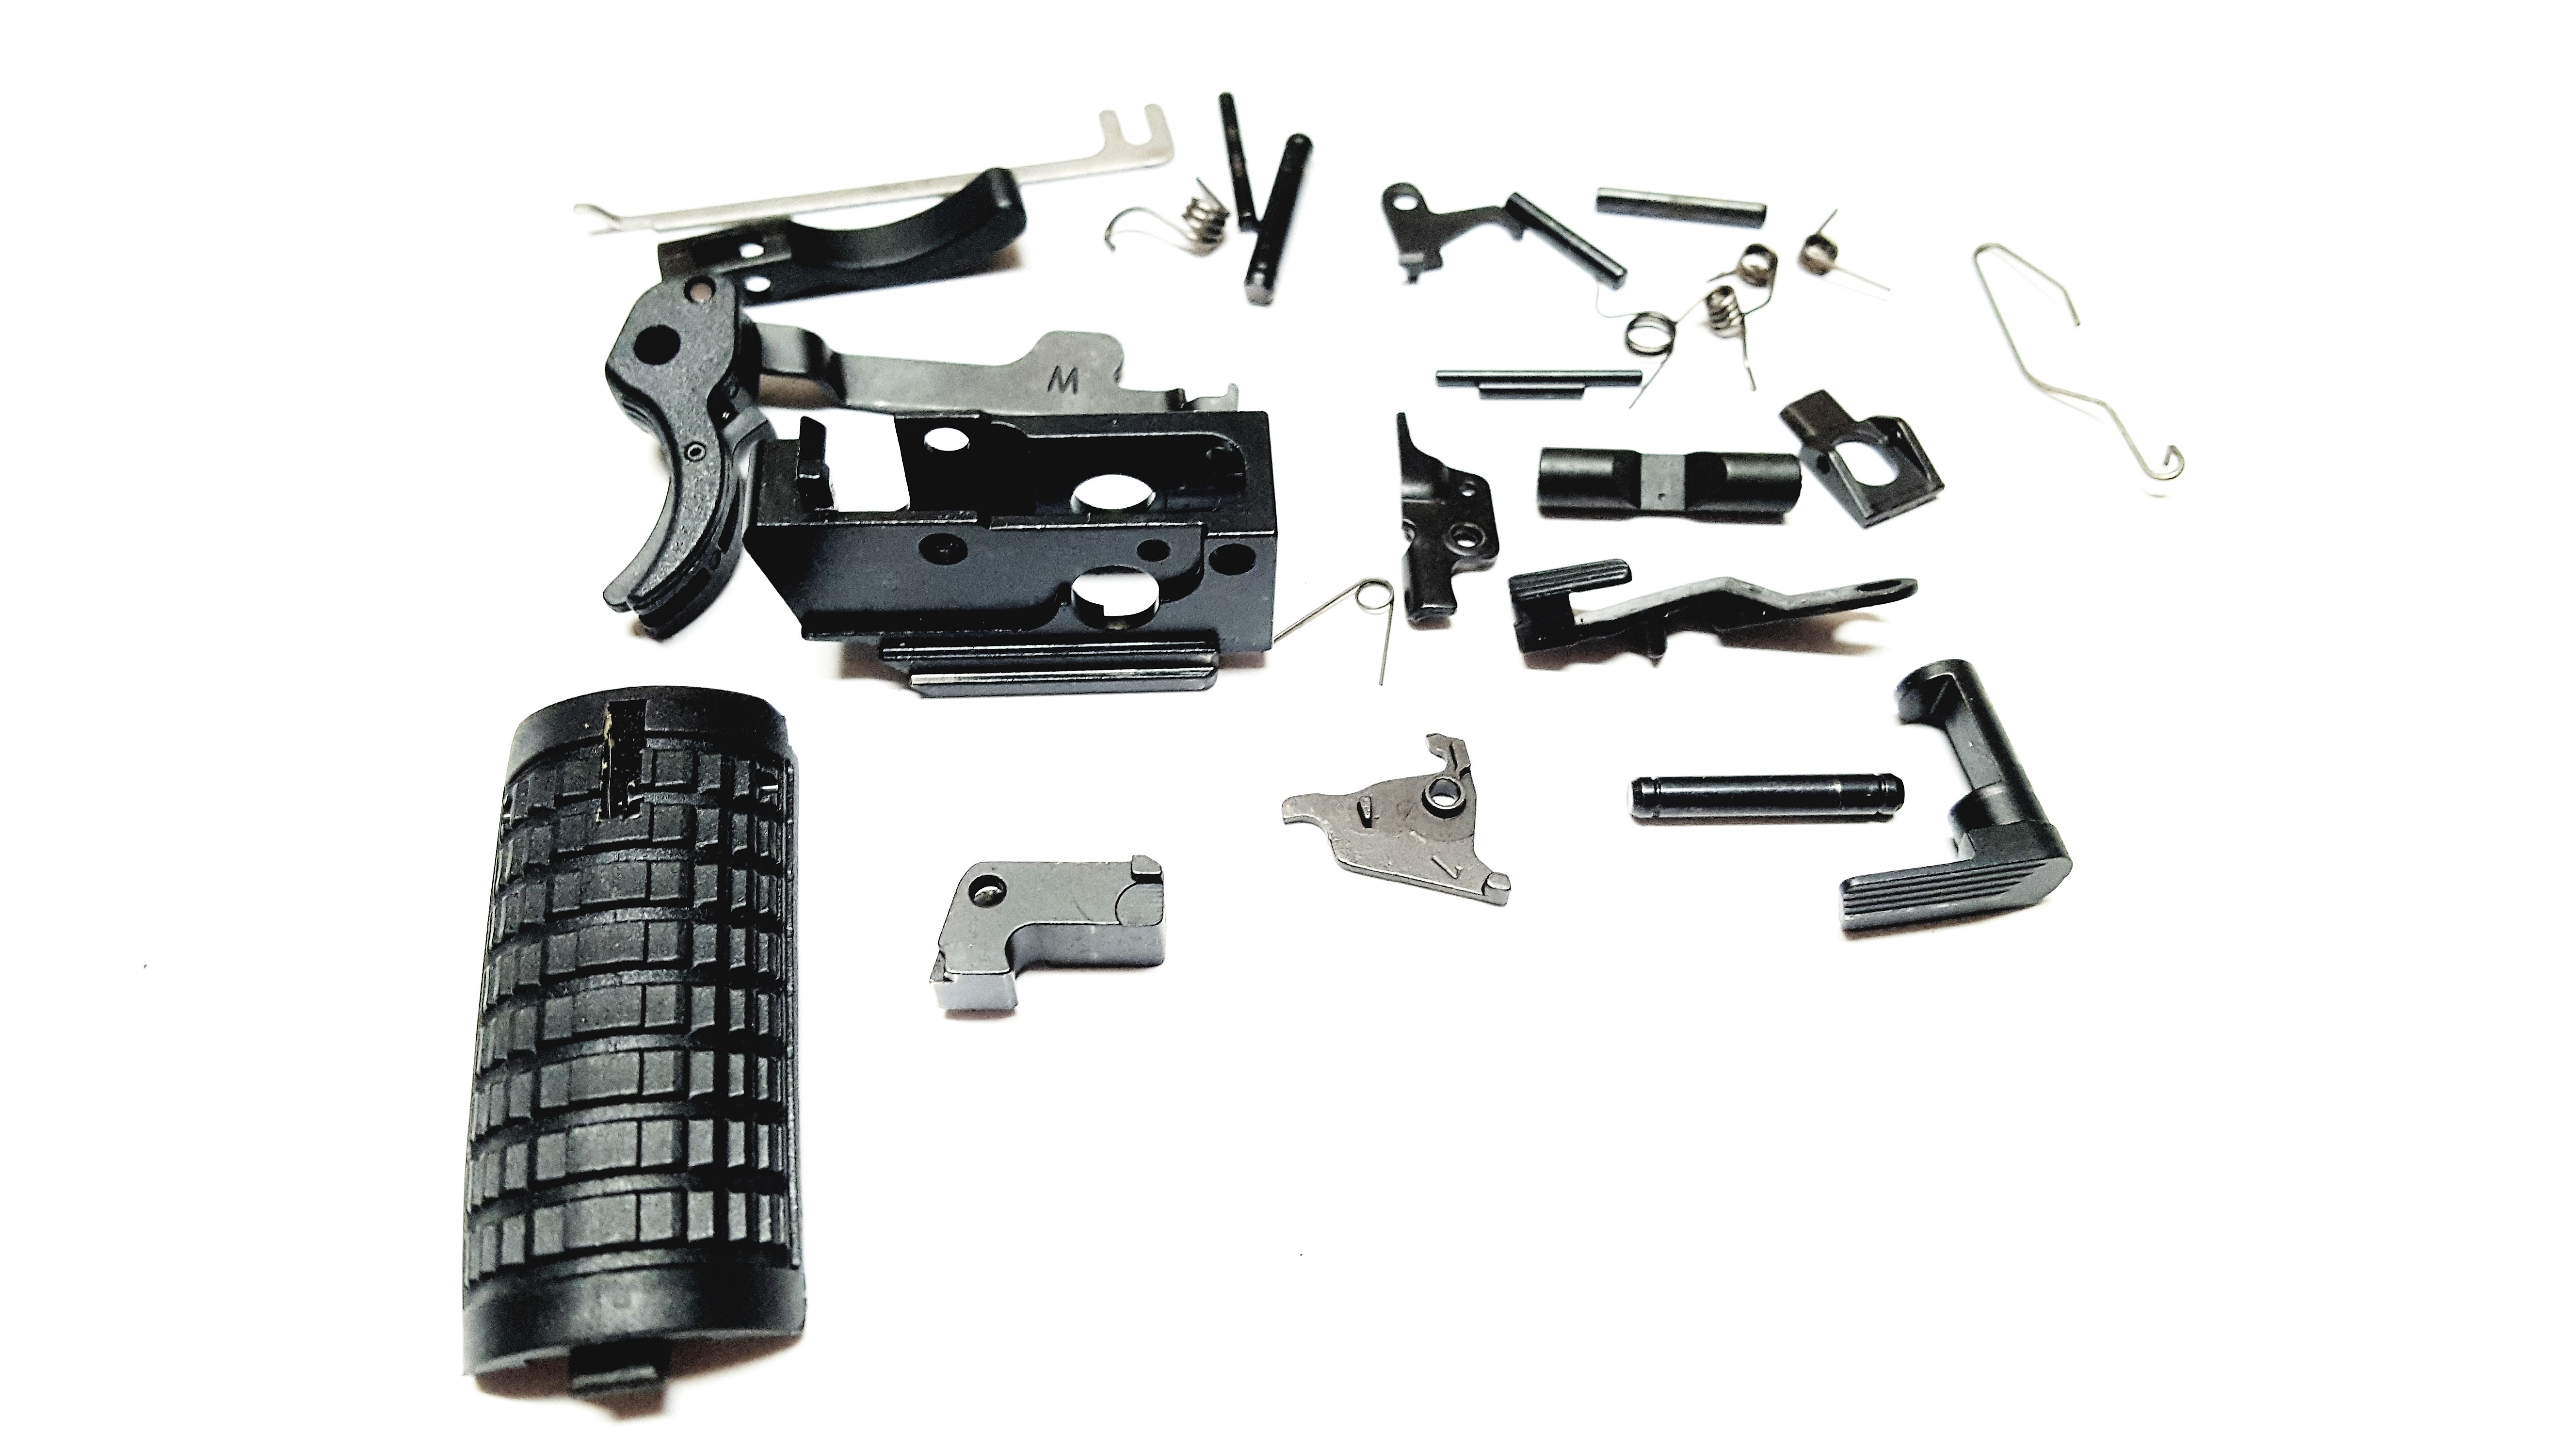 Springfield Armory XD-40 3 3 Trigger Small Parts Kit - 40S&W - No FFL  Required